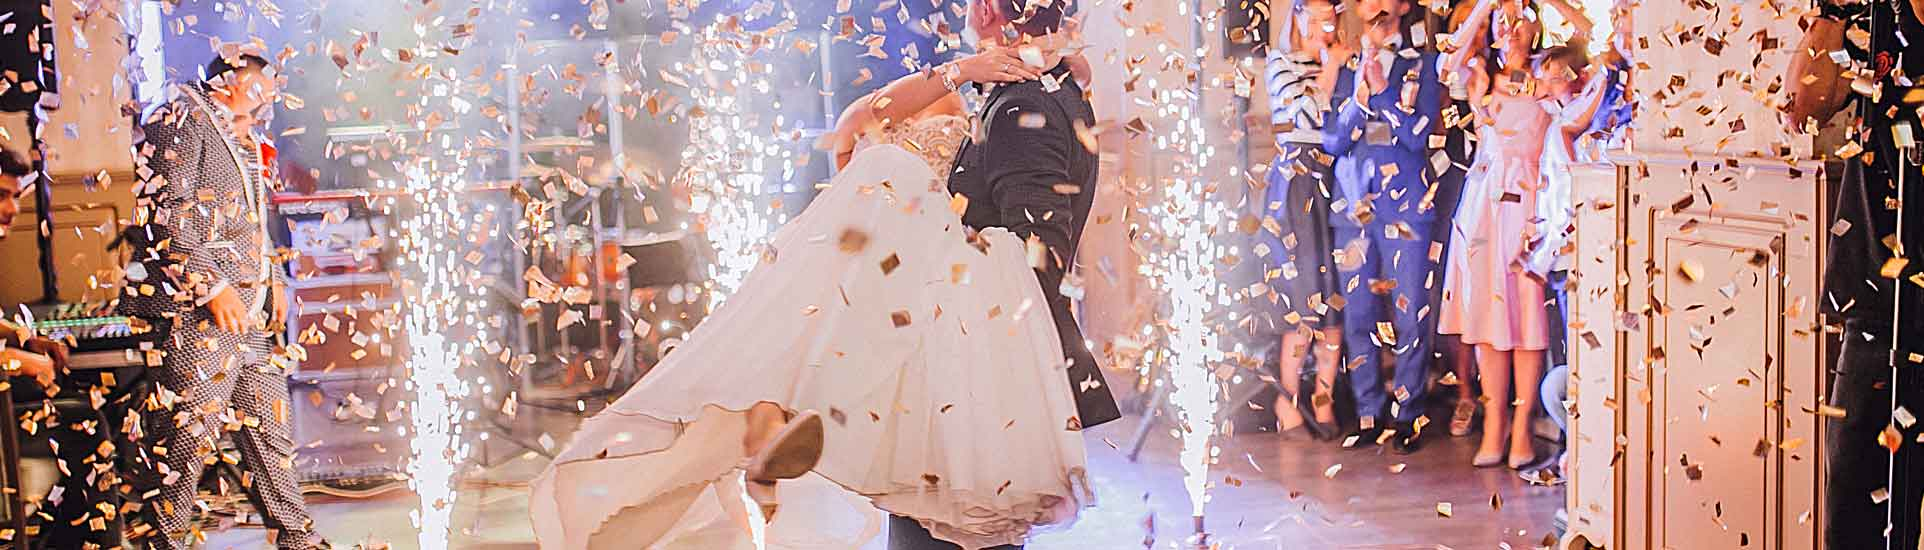 rhodes-weddings-fireworks-and-special-effects-header